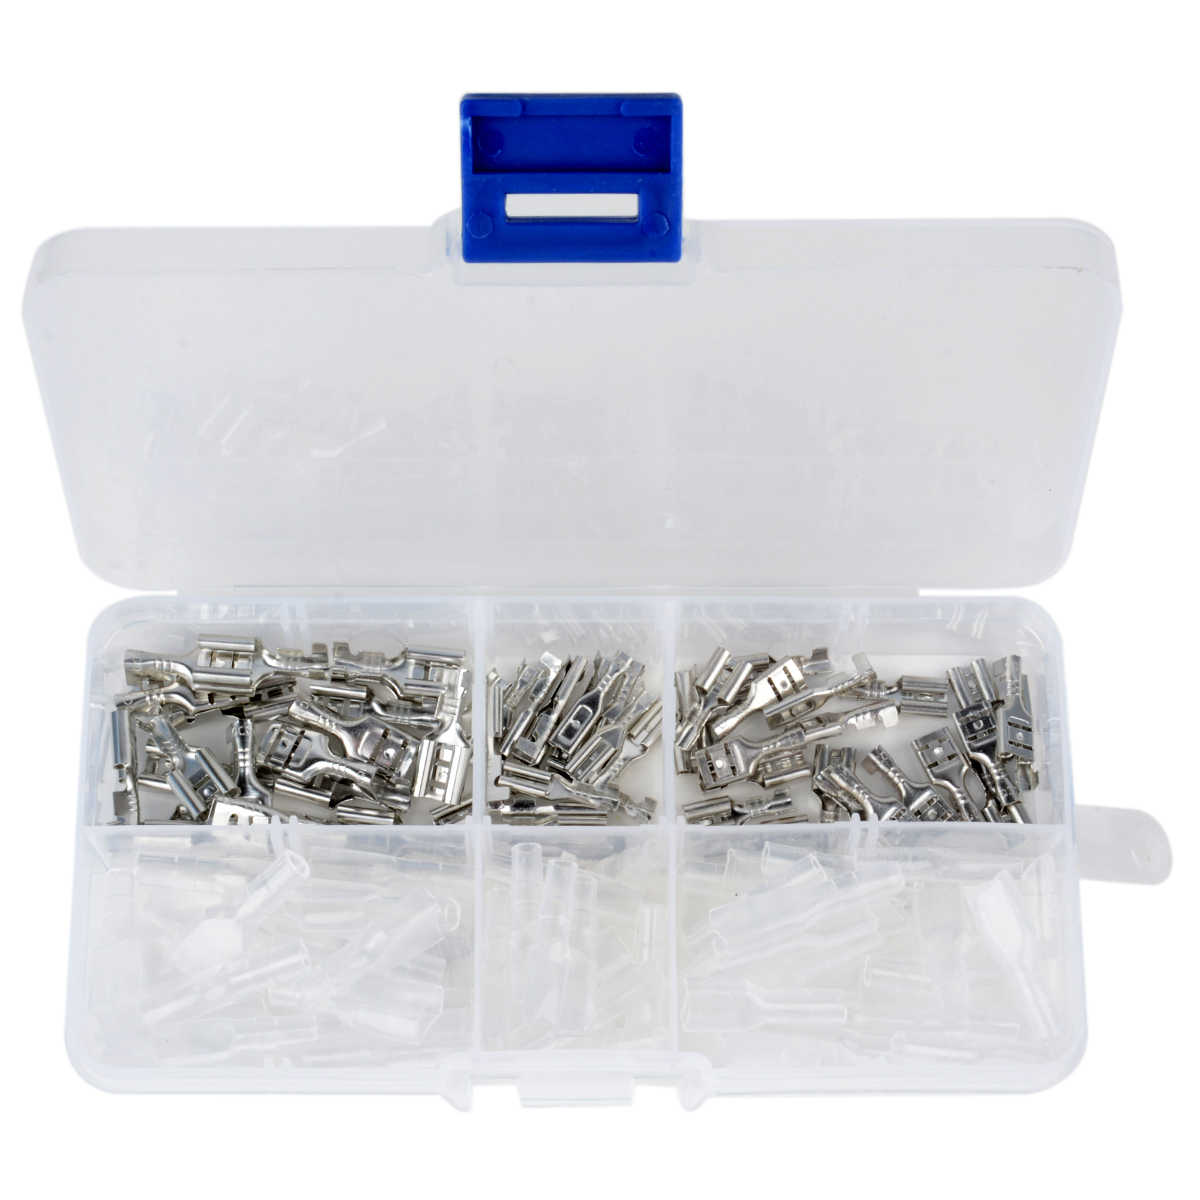 120pcs/Set 2.8mm 4.8mm 6.3mm Female Spade Connectors High Quality Crimp Terminals with Insulating Sleeves